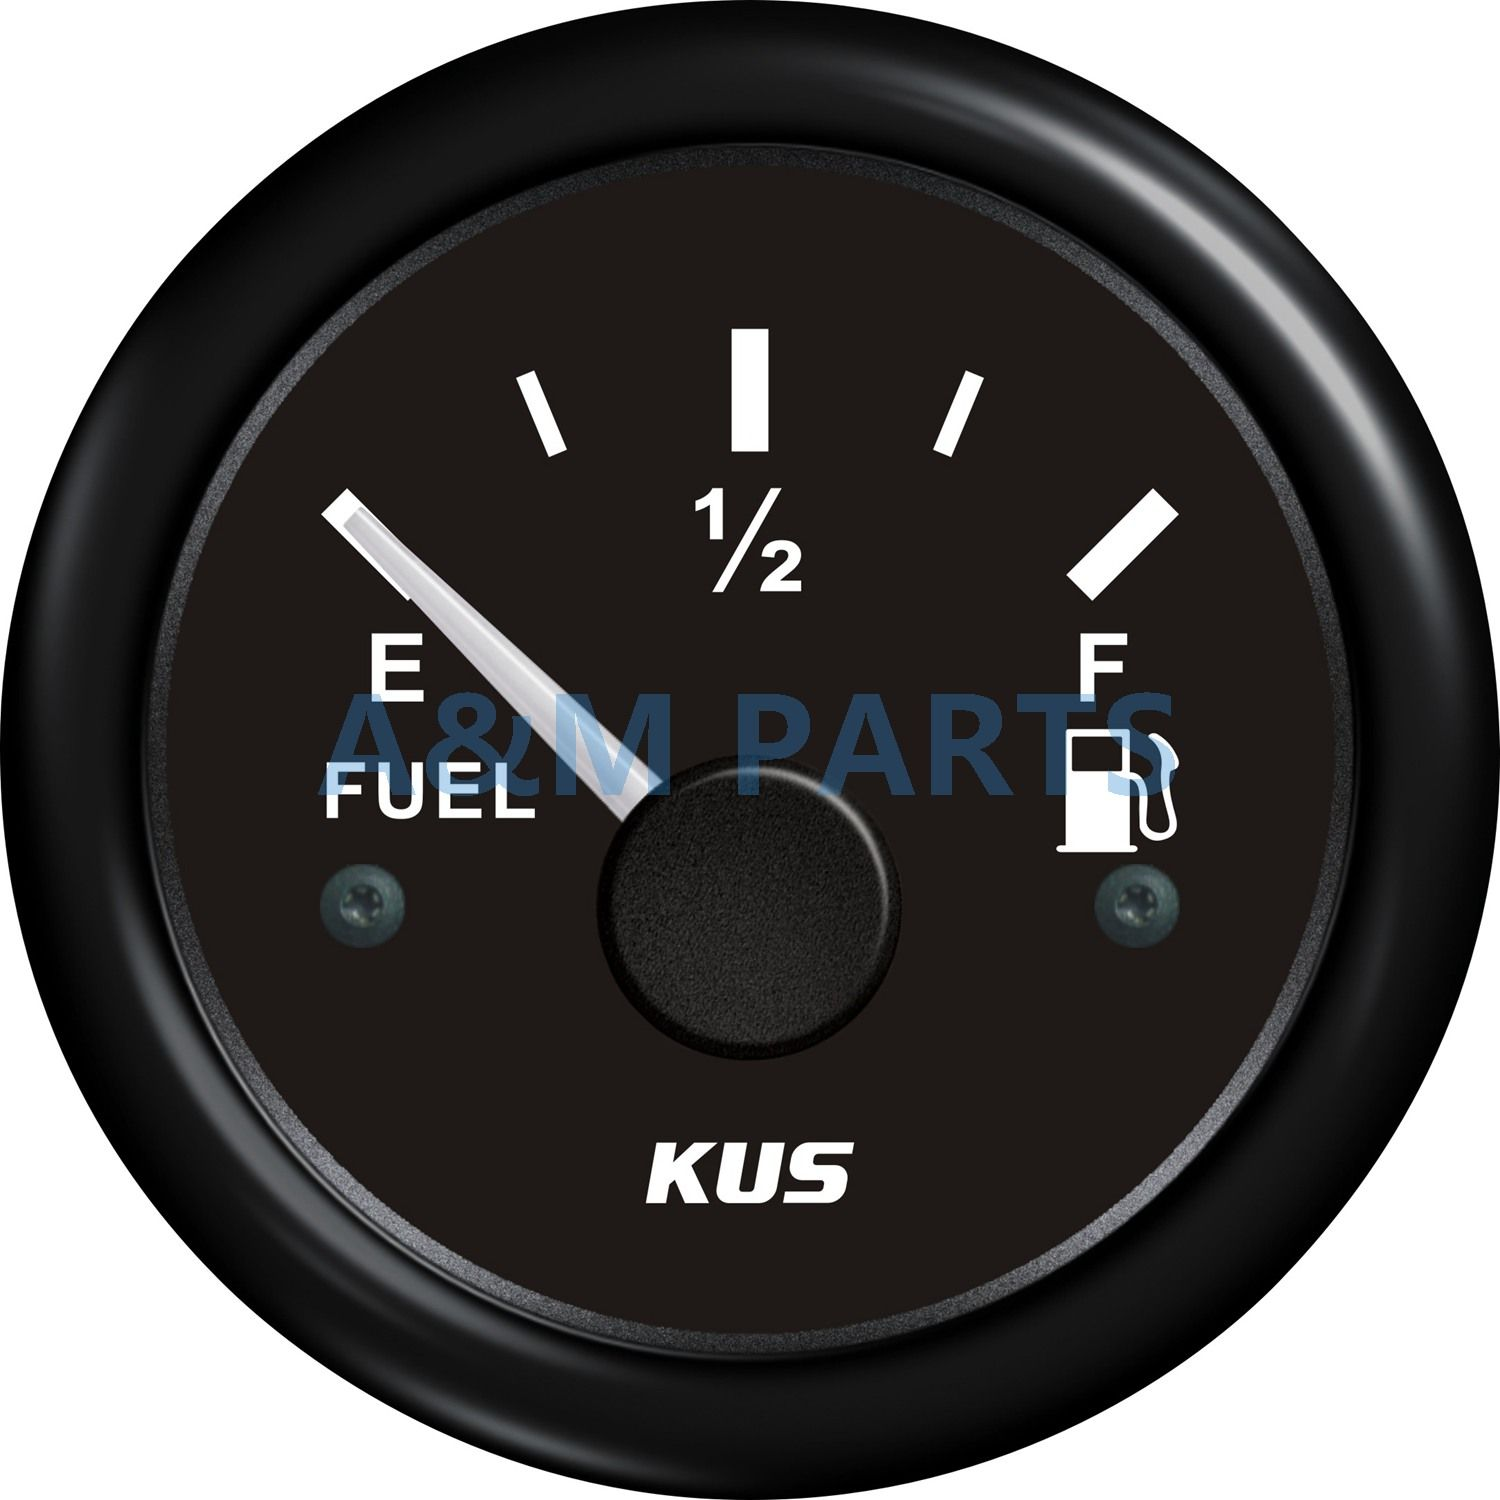 KUS Fuel Level Gauge Marine Boat Truck RV Offroad Fuel Tank Level Gauge Black 52mm 0-190ohms Waterproof